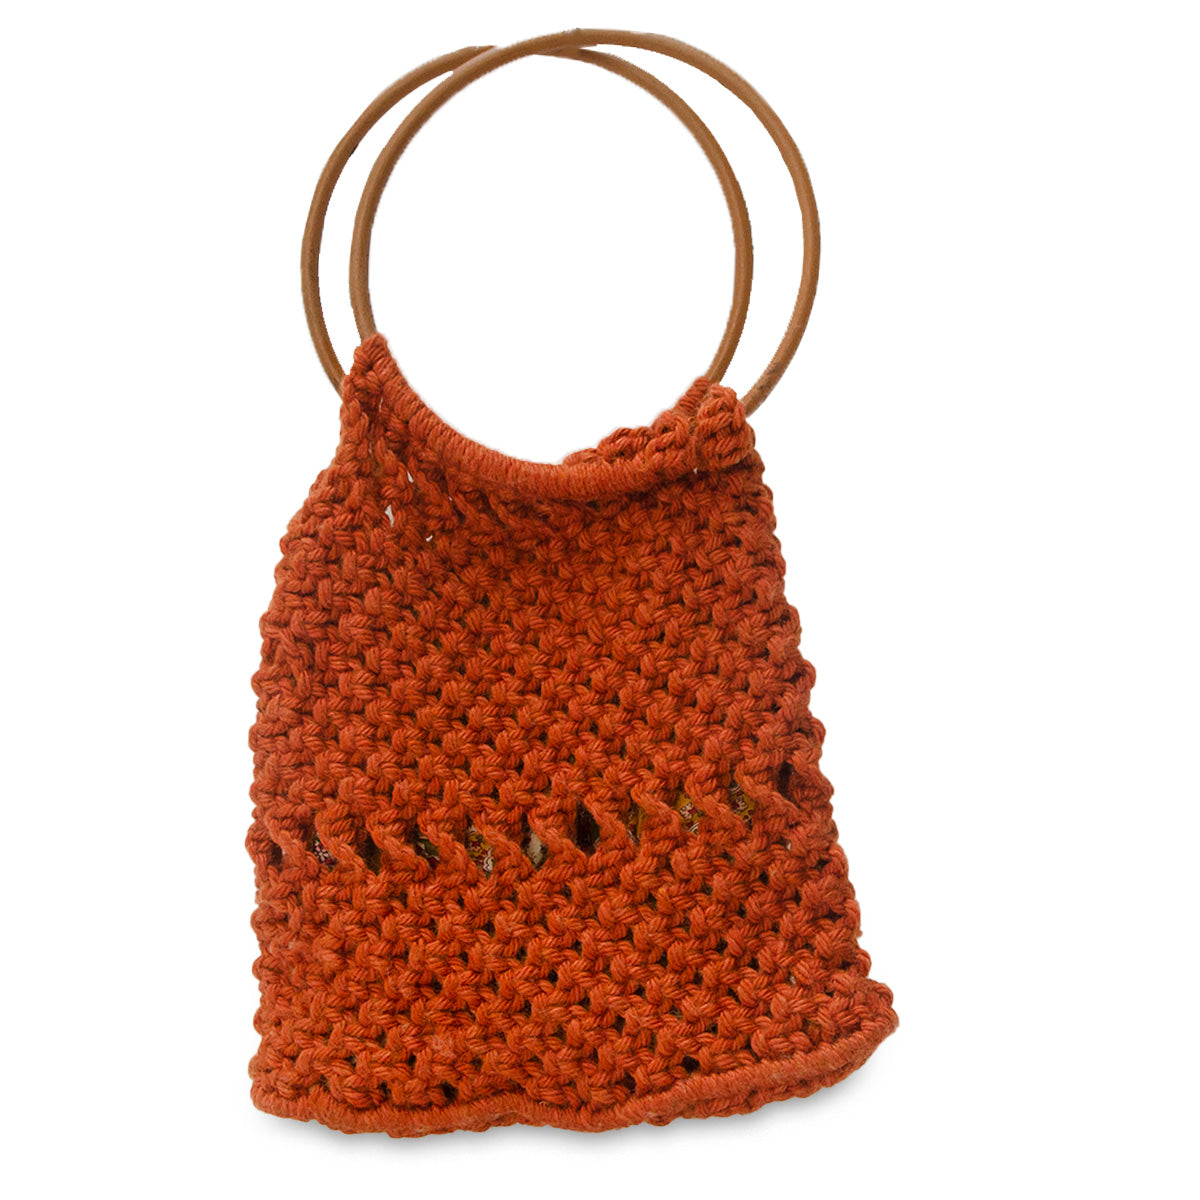 Vintage Macrame Handbag, Dark Orange 2